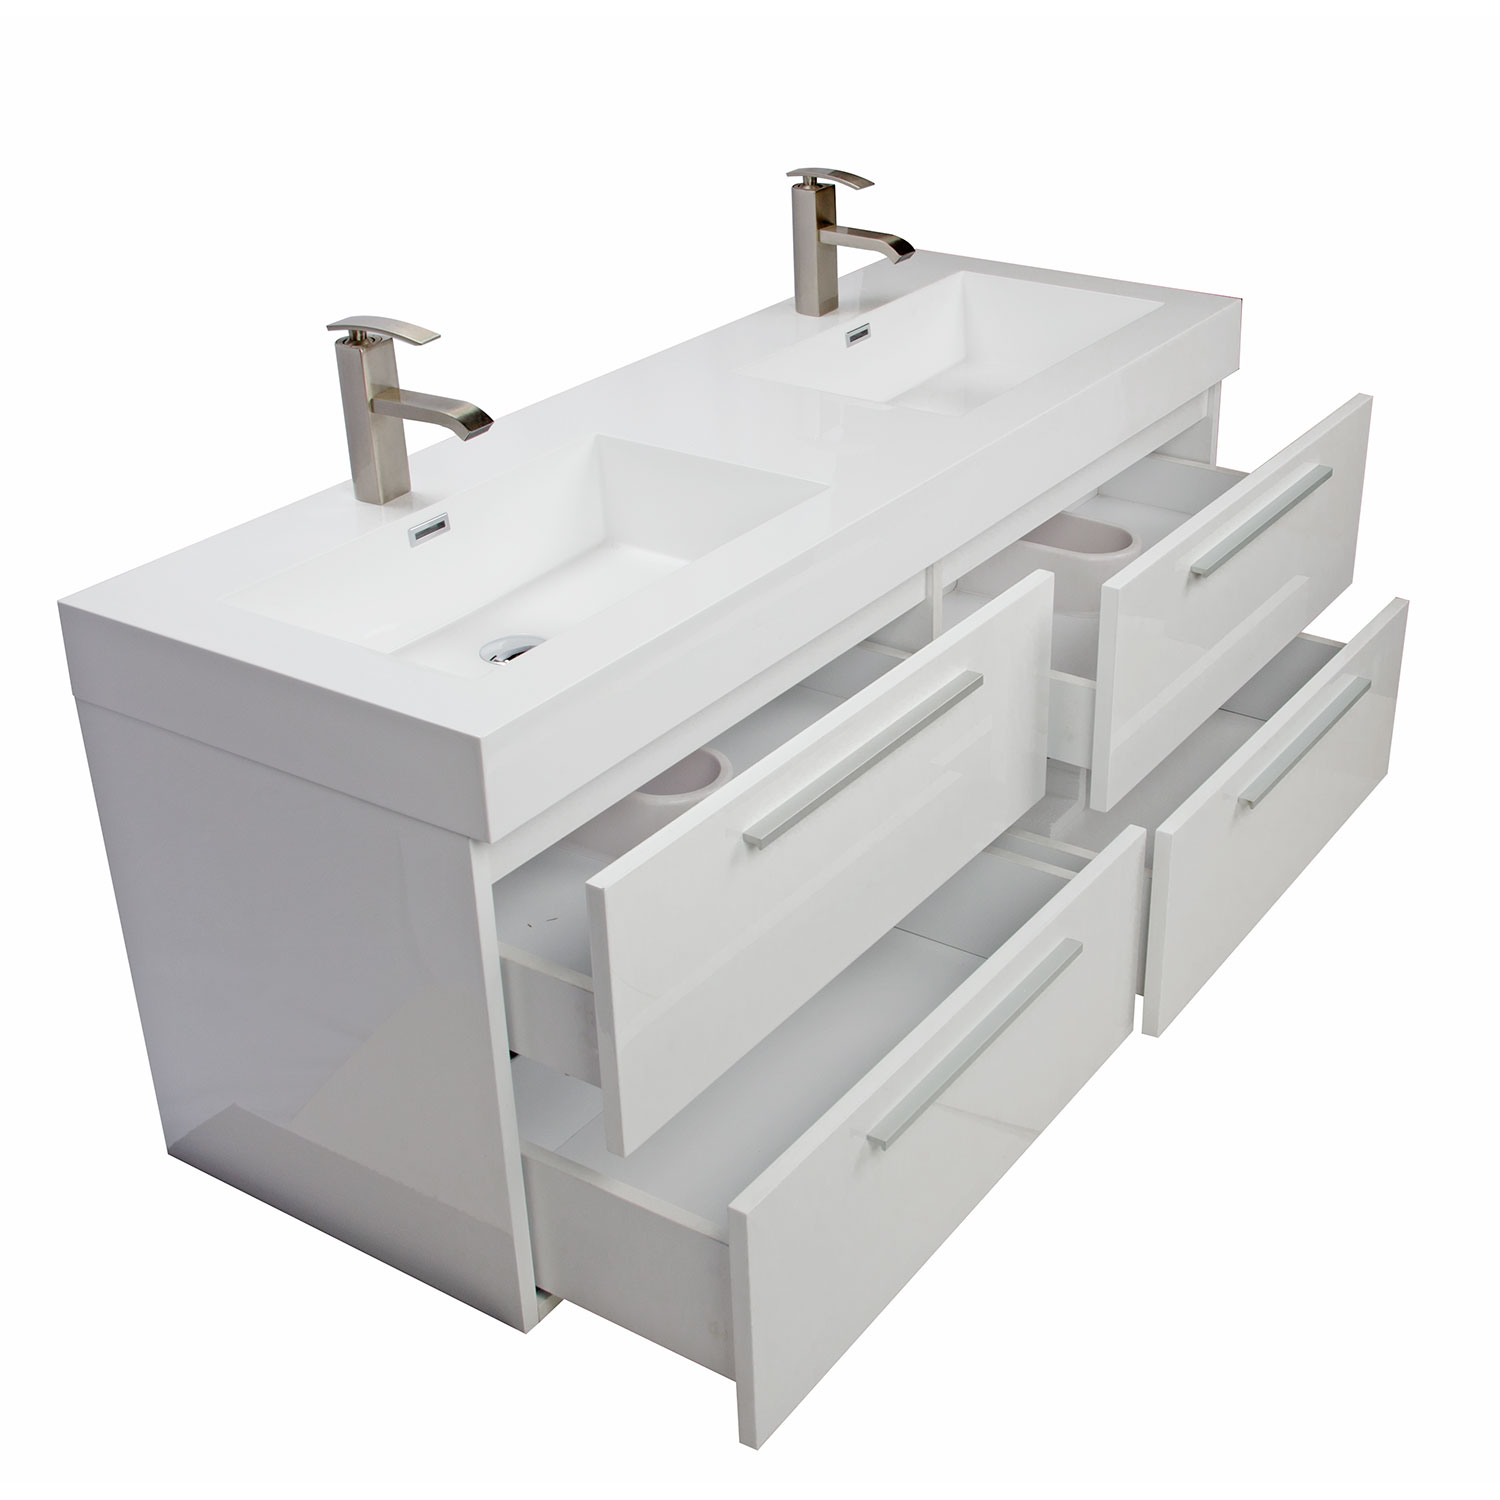 Buy 54 inch modern double sink vanity set with drawers gloss white tn b1380 hgw - Kona modern bathroom vanity set ...